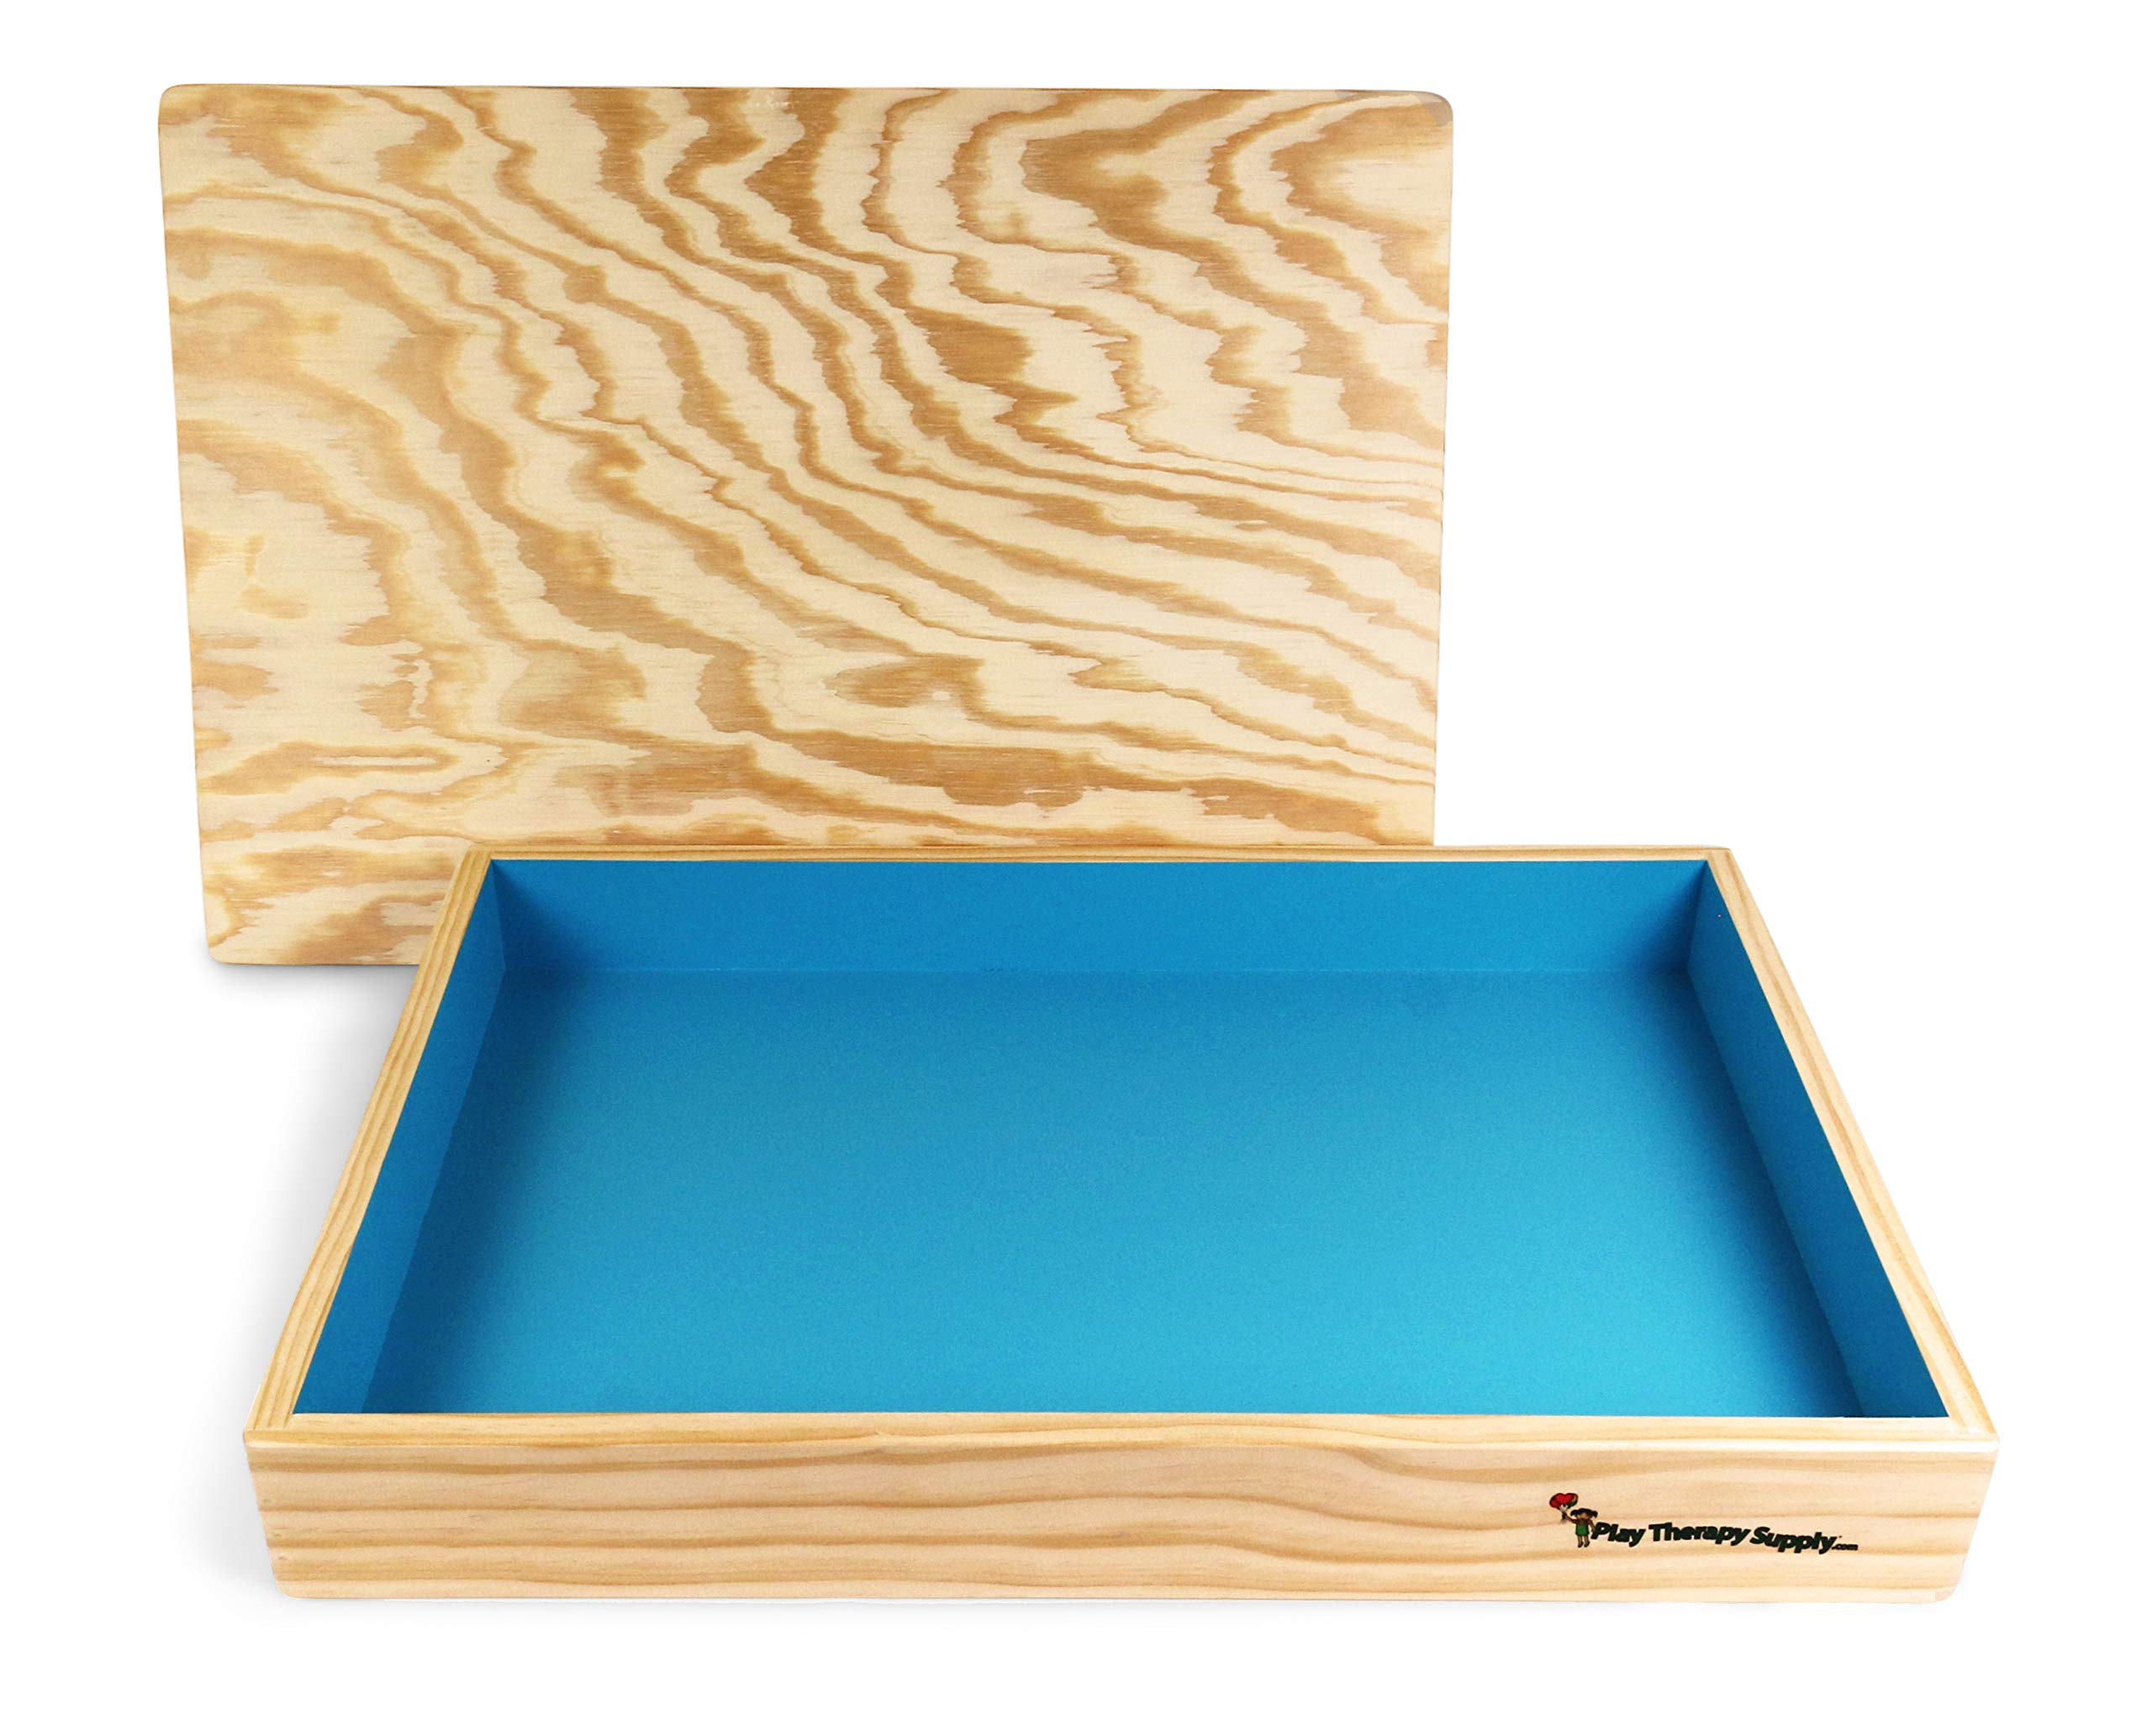 PlayTherapySupply Basic Wooden Sandtray with Lid